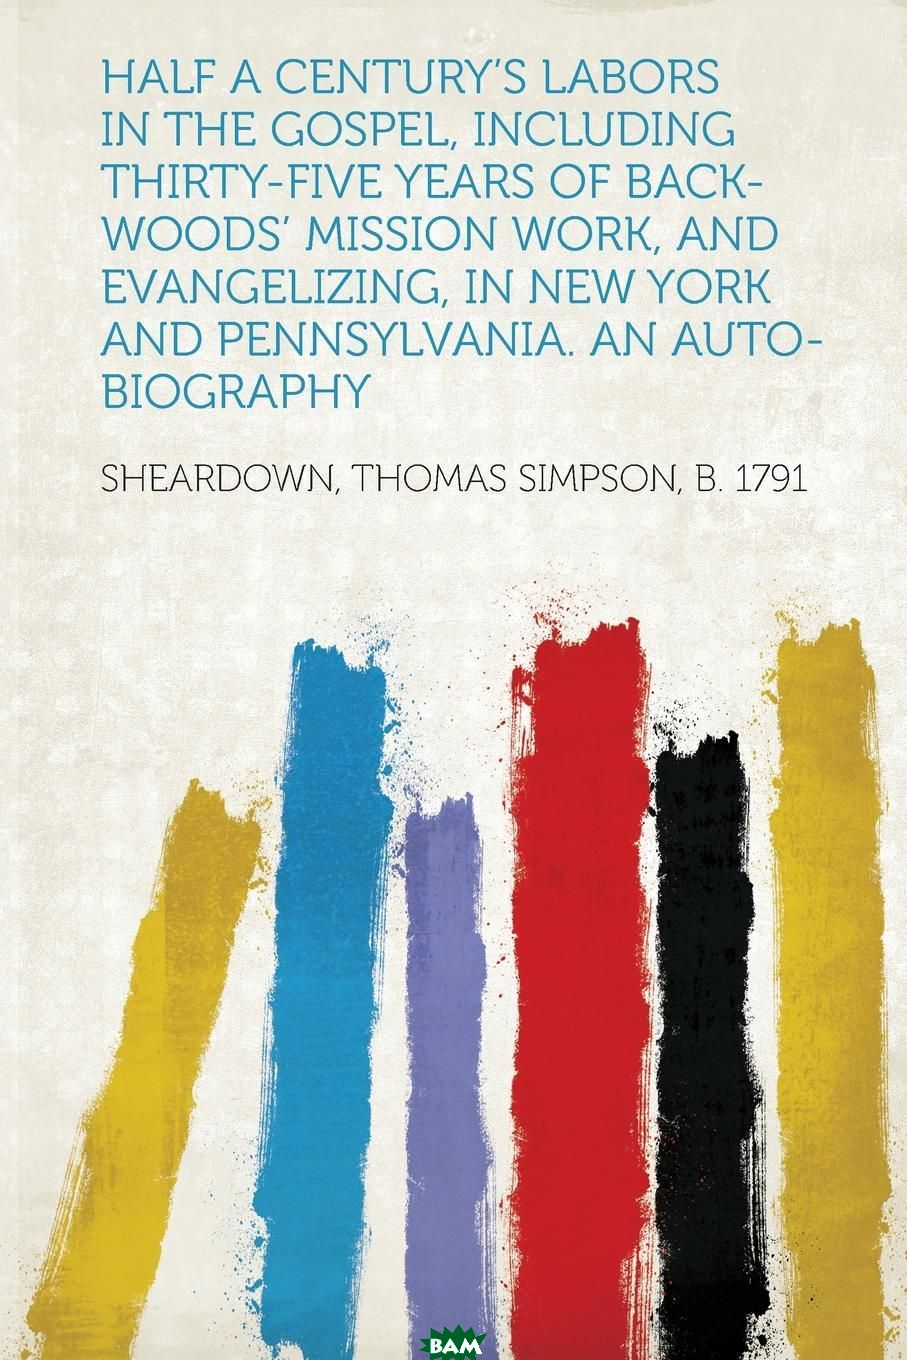 Купить Half a Century.s Labors in the Gospel, Including Thirty-Five Years of Back-Woods. Mission Work, and Evangelizing, in New York and Pennsylvania. An Auto-Biography, Sheardown Thomas Simpson b. 1791, 9781290997775